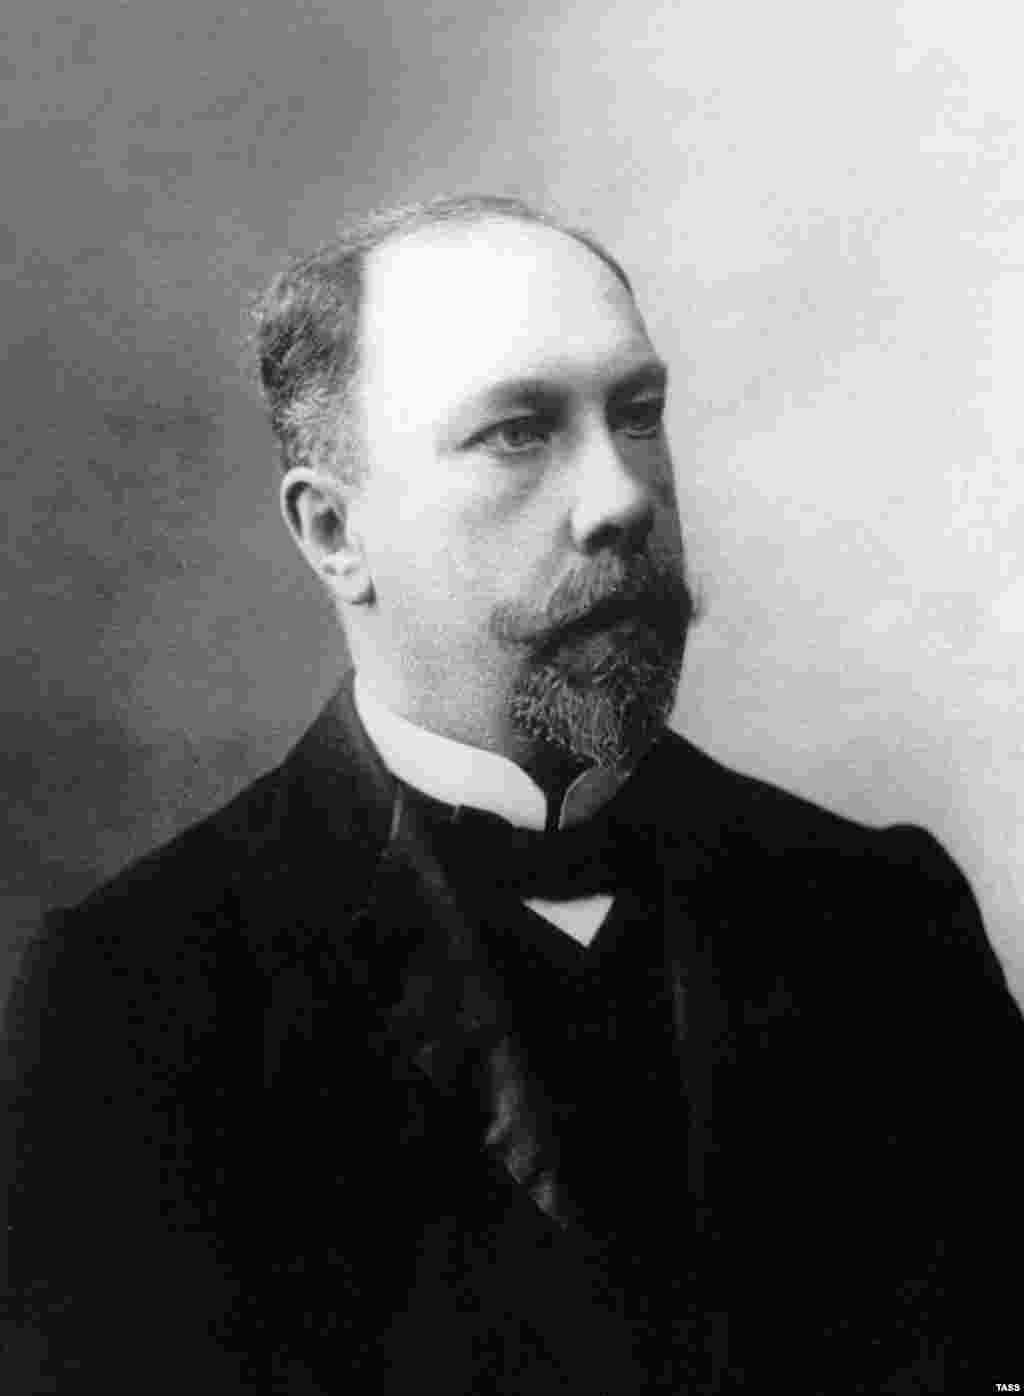 TASS grew out of the St. Petersburg Telegraphic Agency, which was founded in 1904 and was the main news service of imperial Russia. The agency's first director was Pavel Miller (pictured here), a senior official in Russia's Finance Ministry.